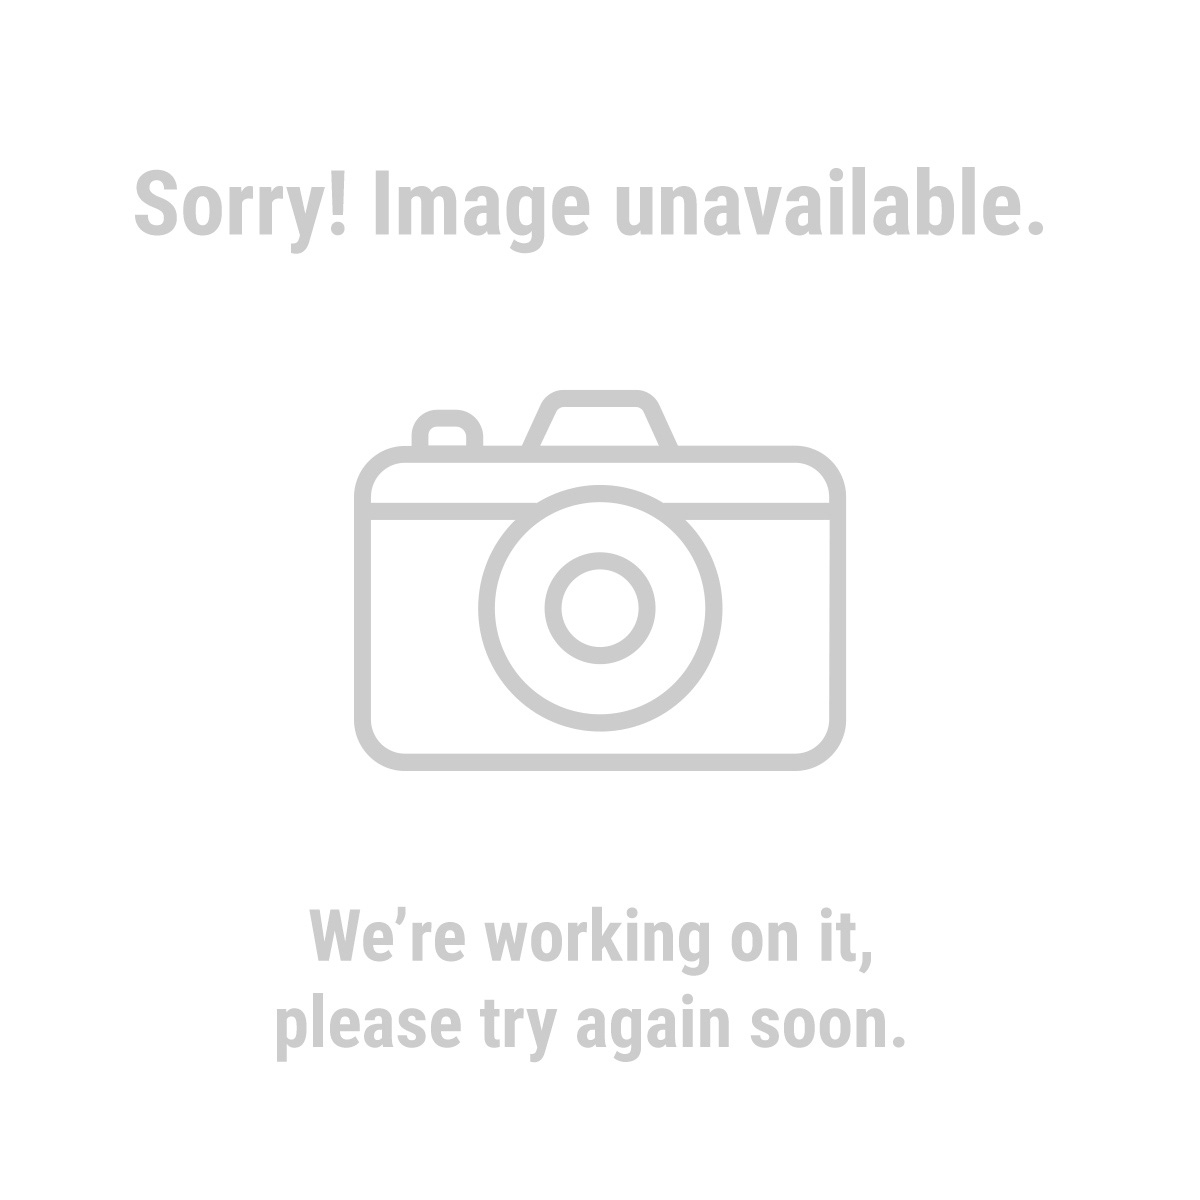 Warrior 61723 High Speed Steel Drill Bit Set, 13 Piece